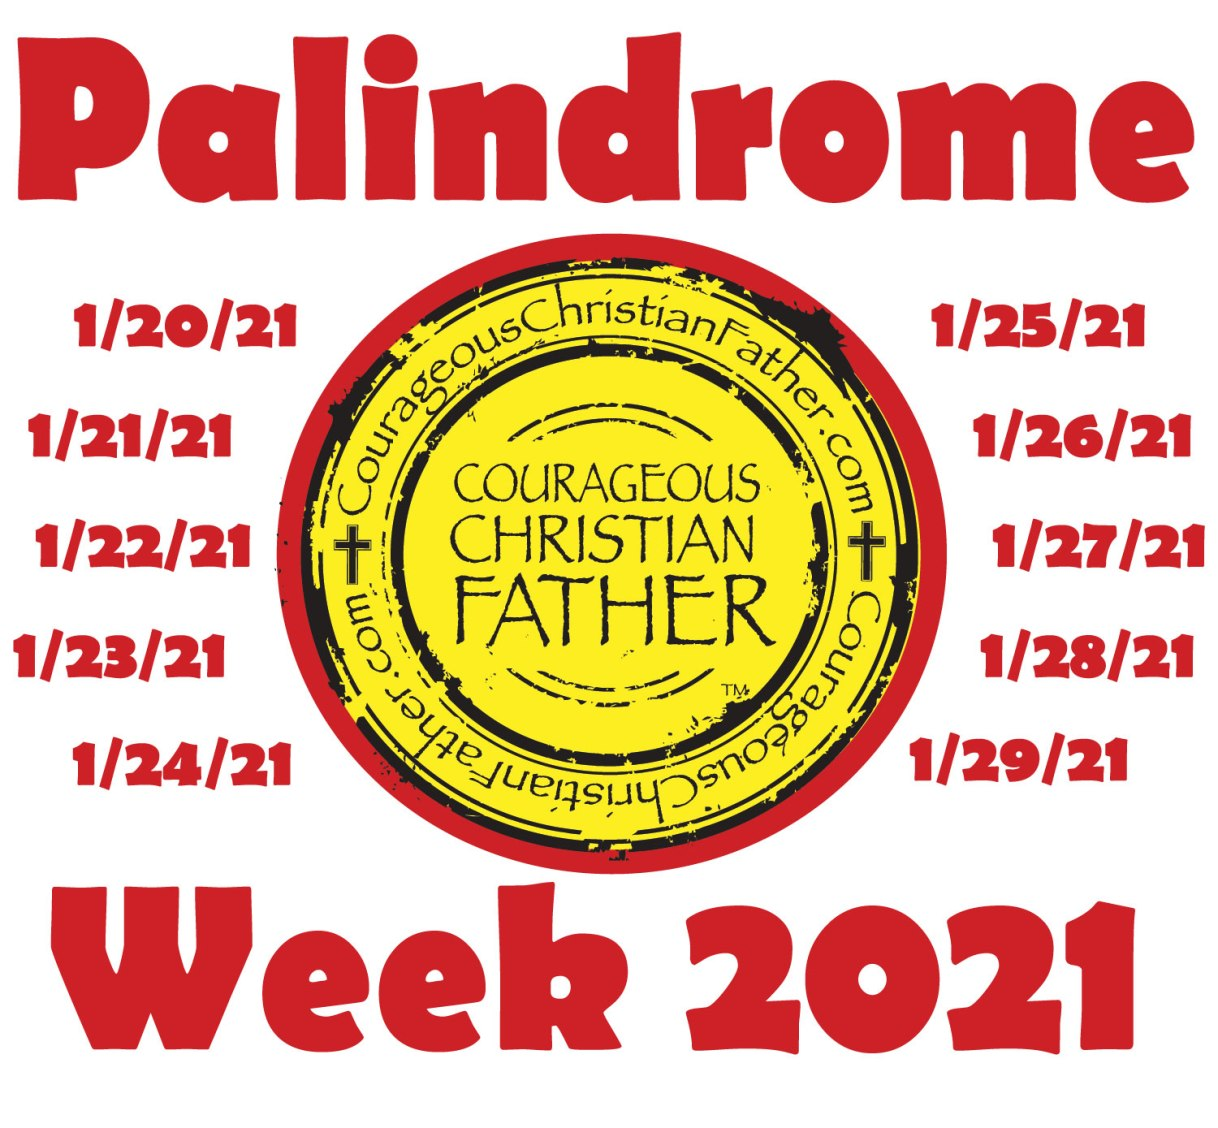 Palindrome Week 2021